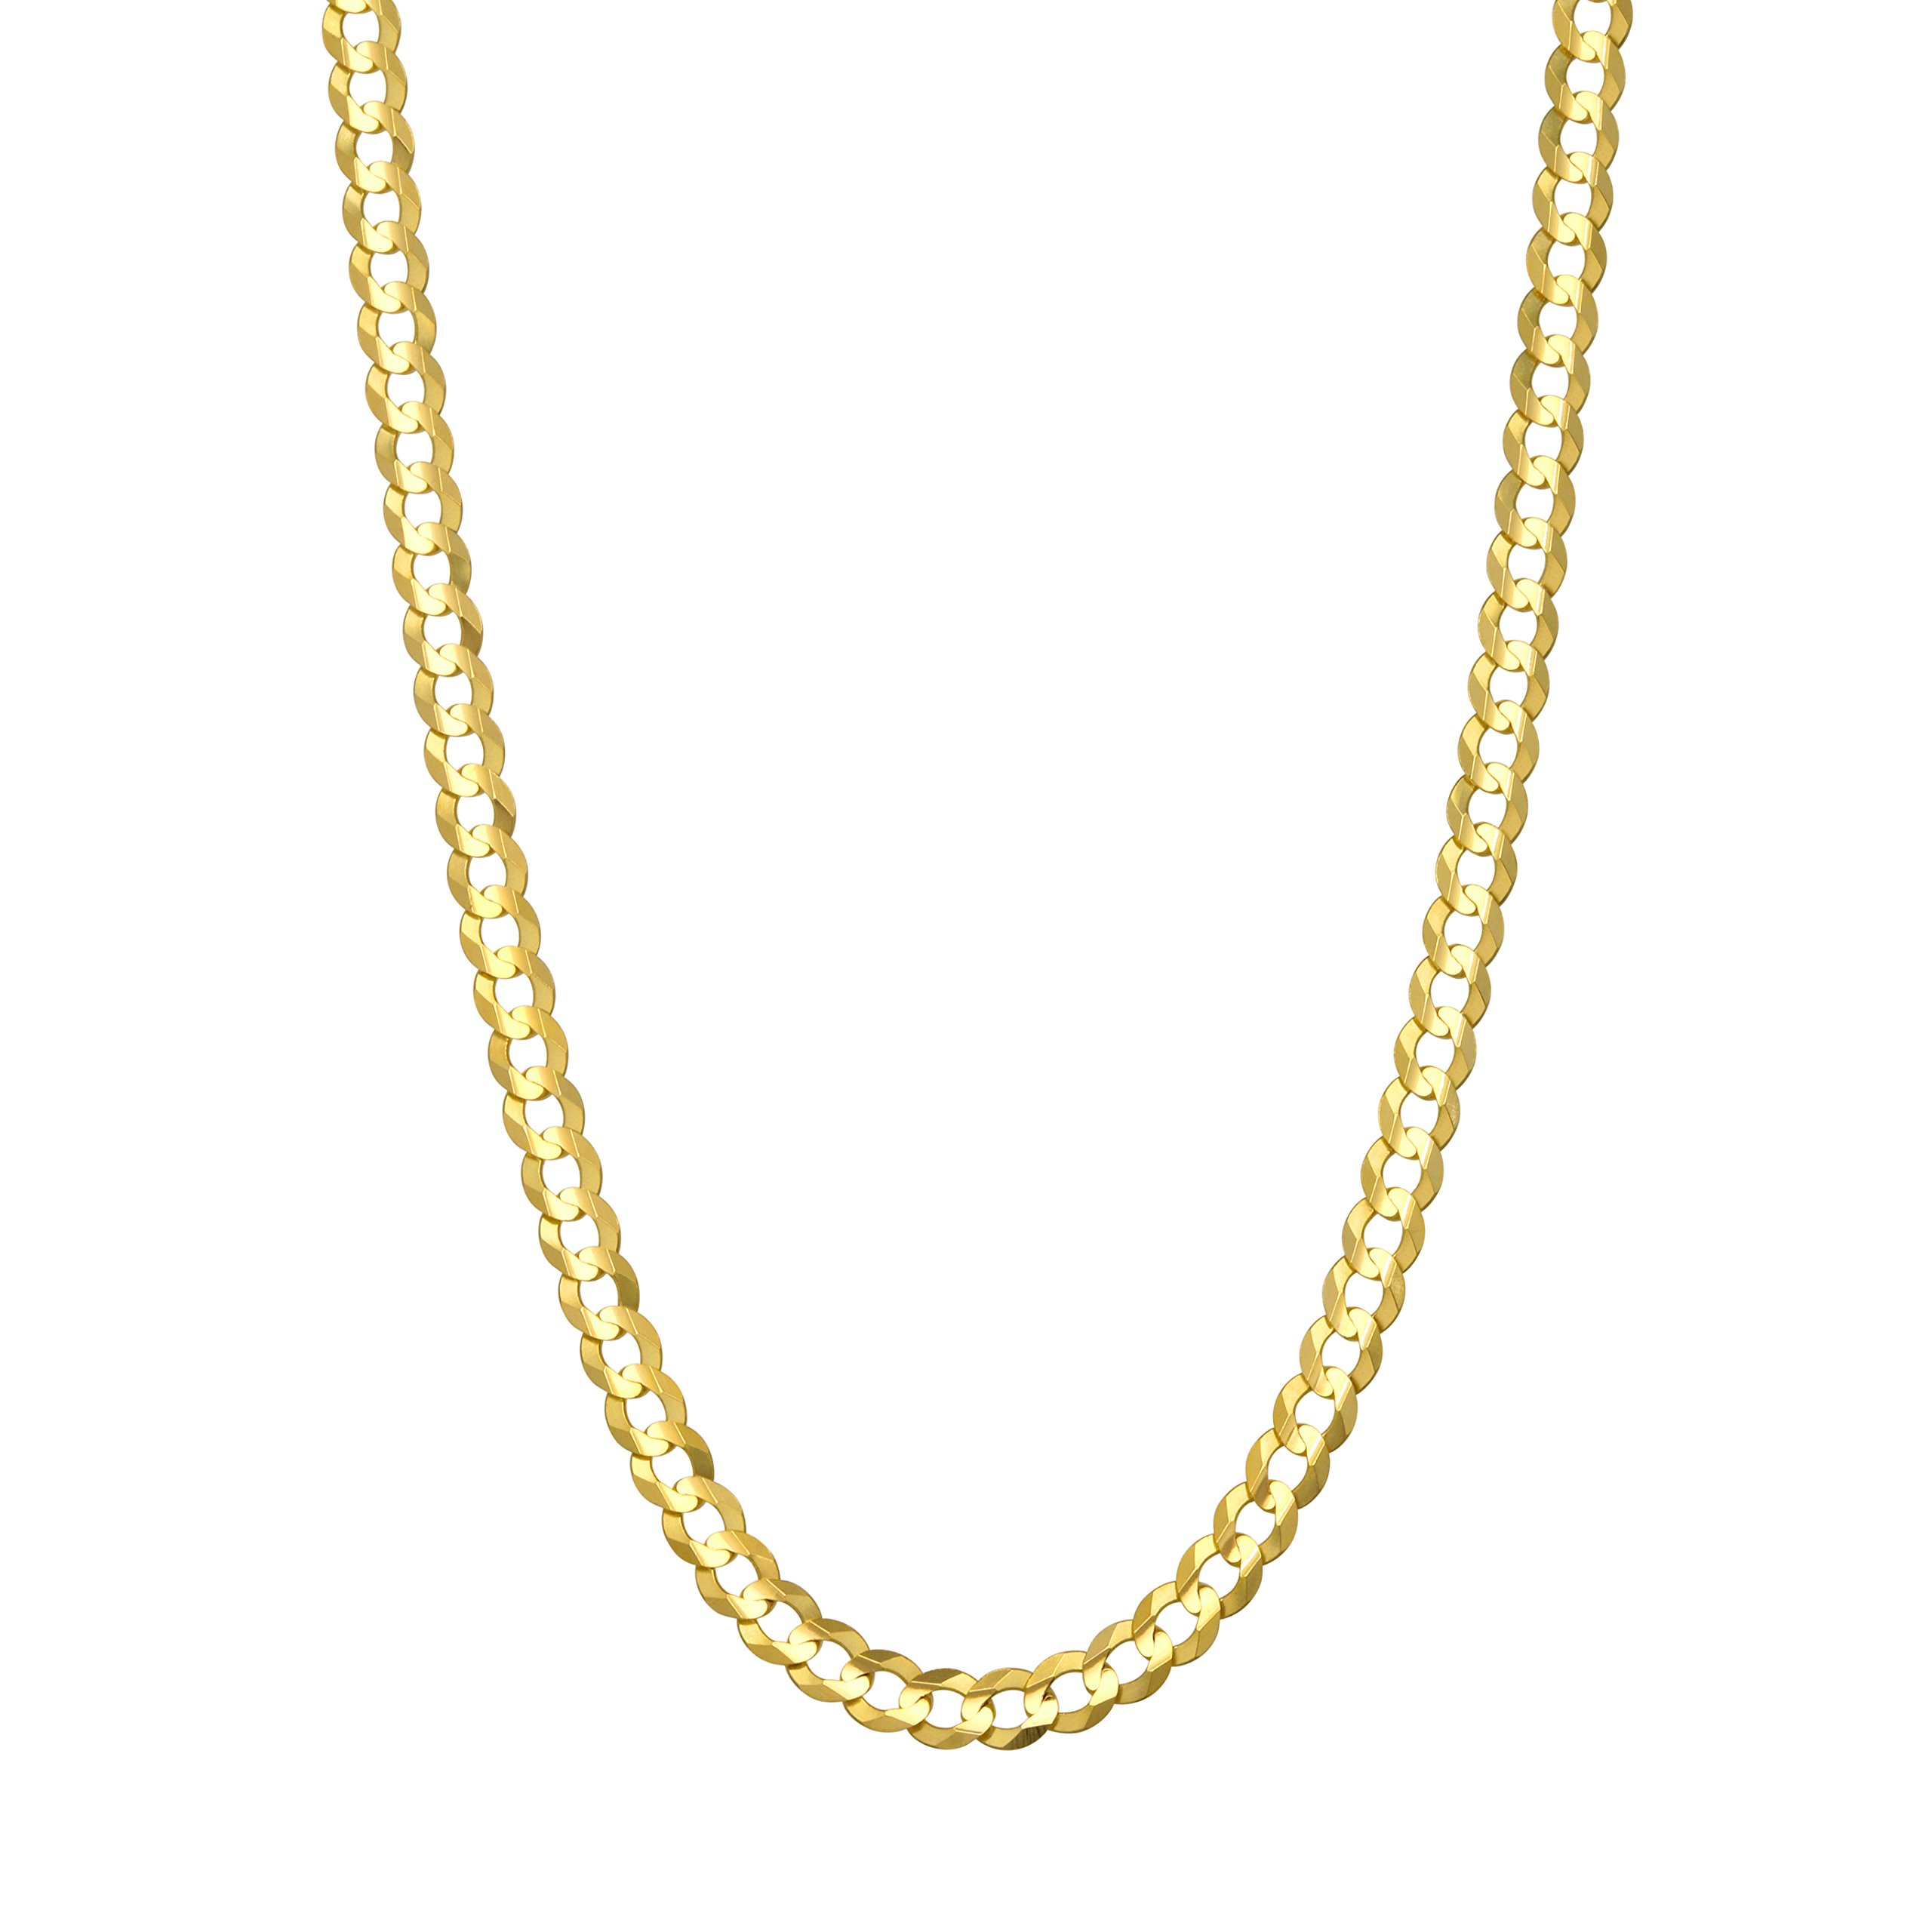 Pairfection 14K Yellow Solid Curb Gold with Lobster Clasp - 3.60 MM Wide 20 Inches Long Necklace